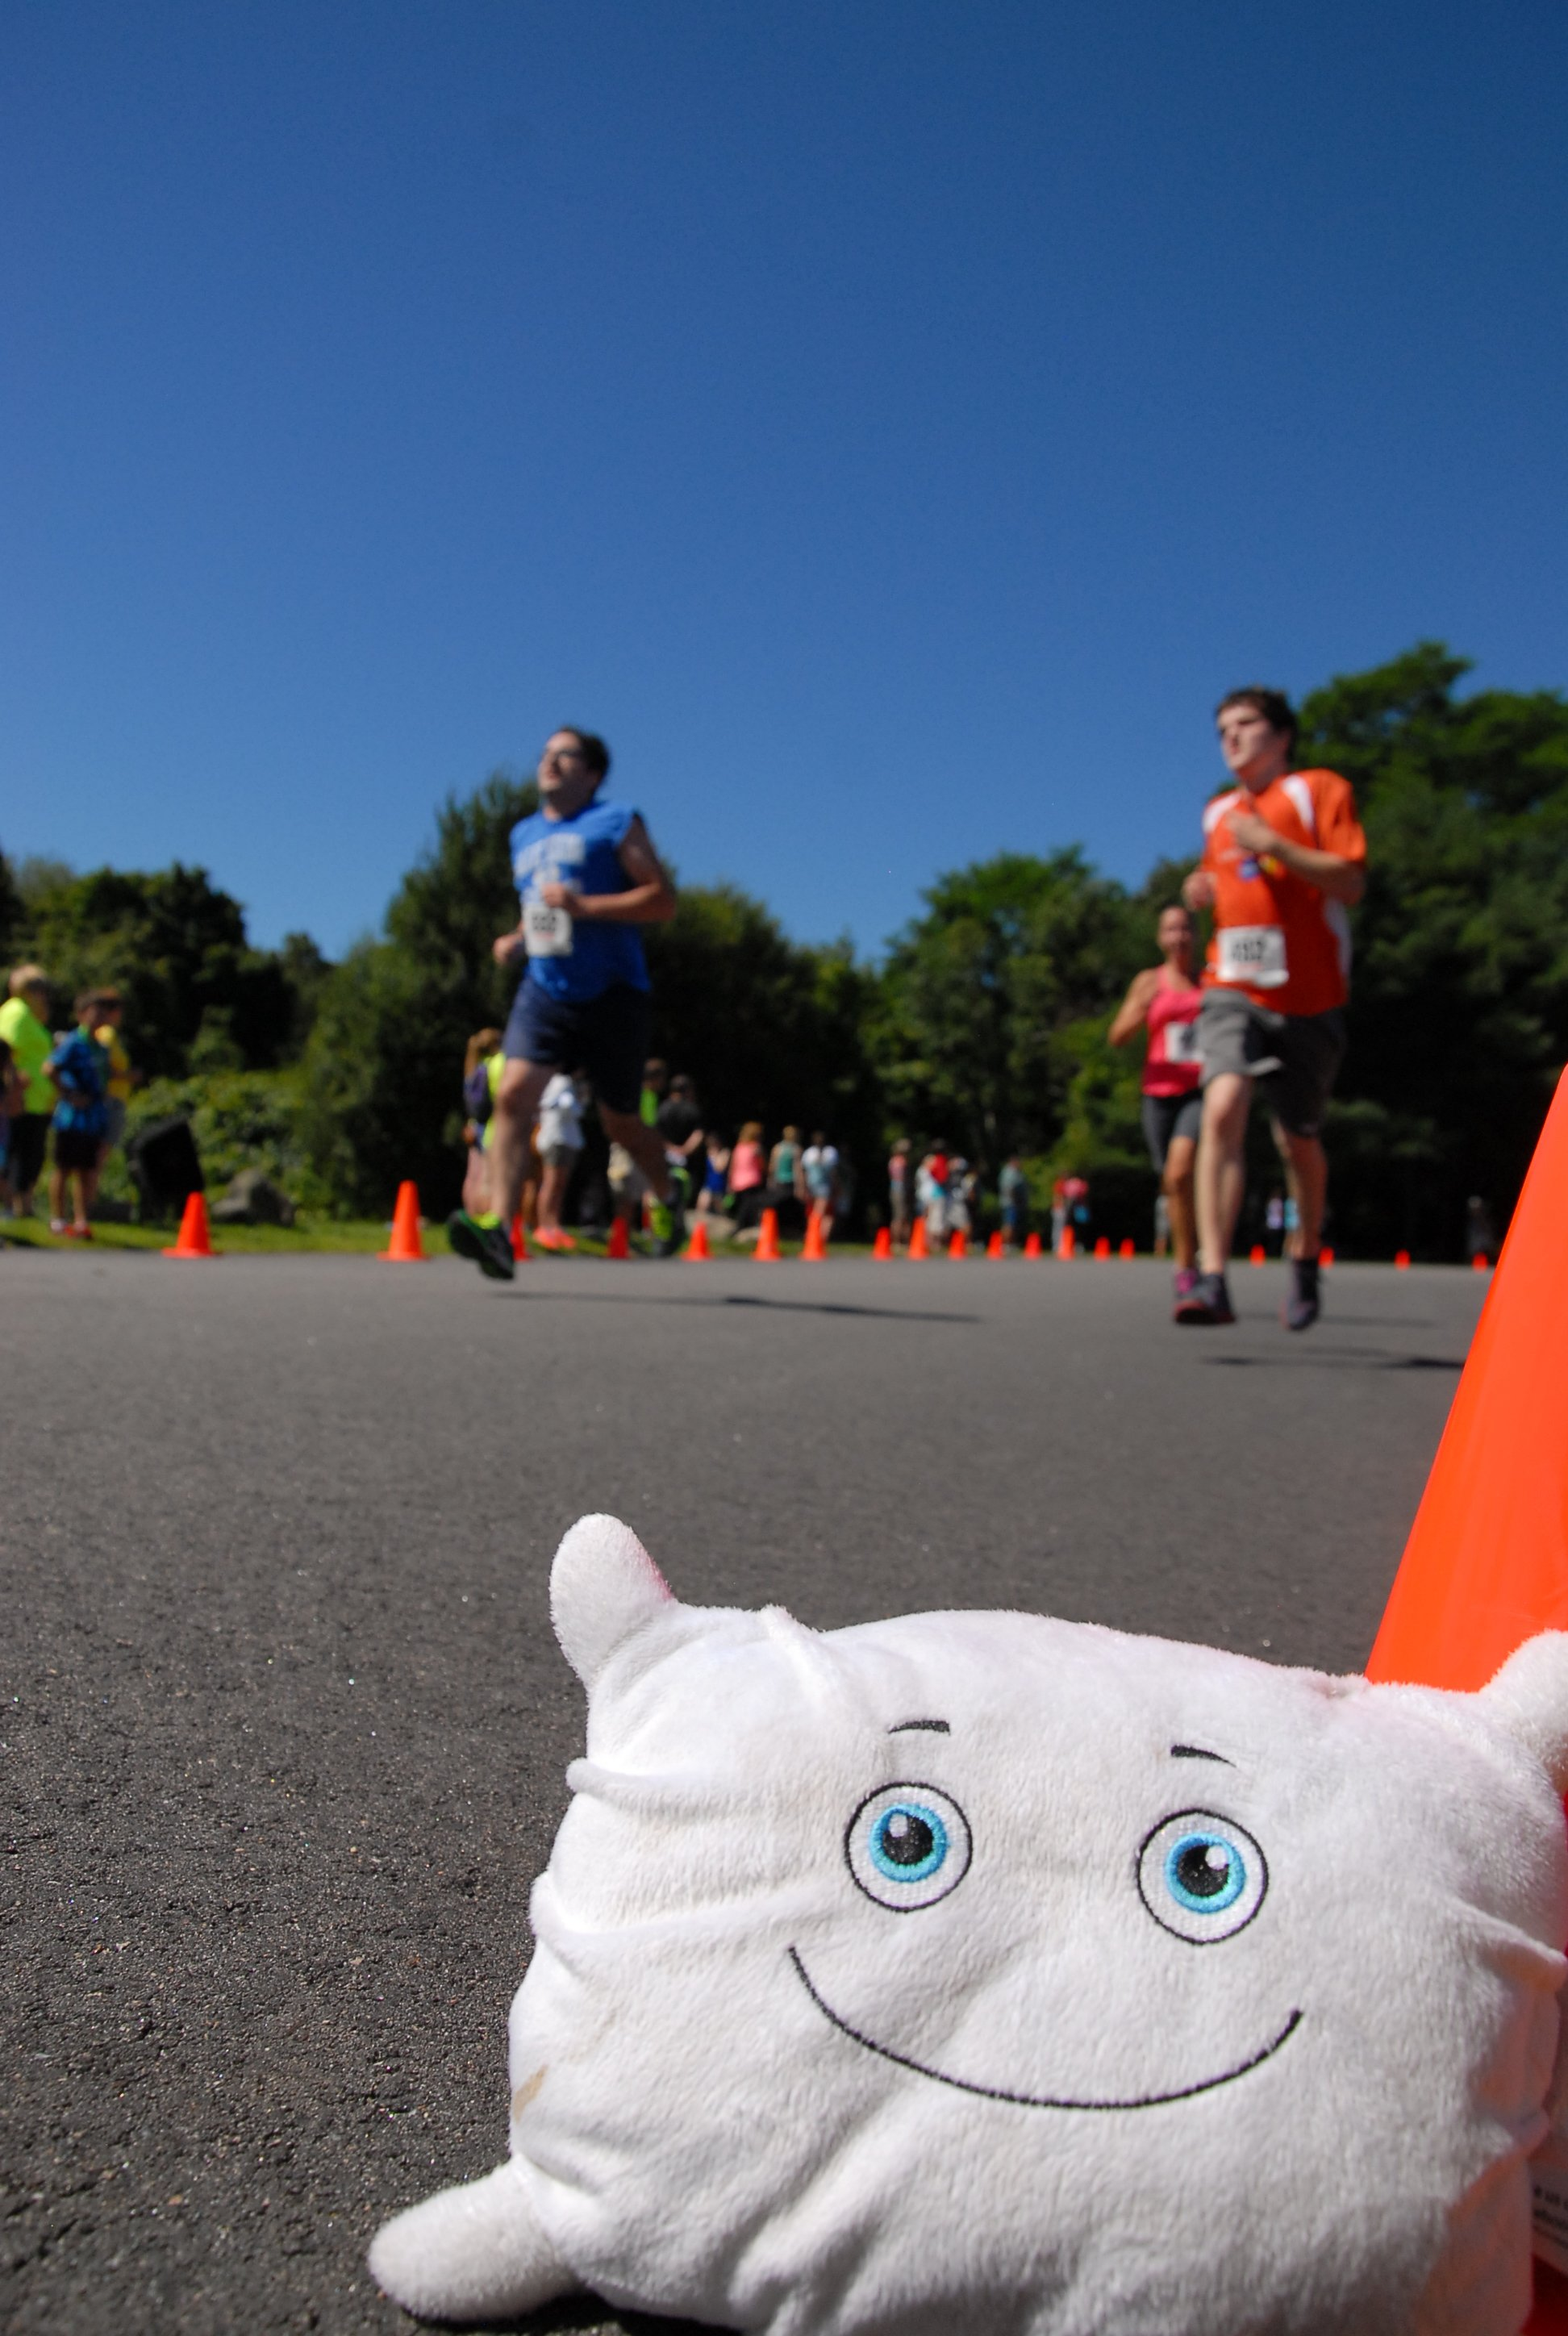 Pillow Featherbed runs the Bobby Doyle Summer Classic road race